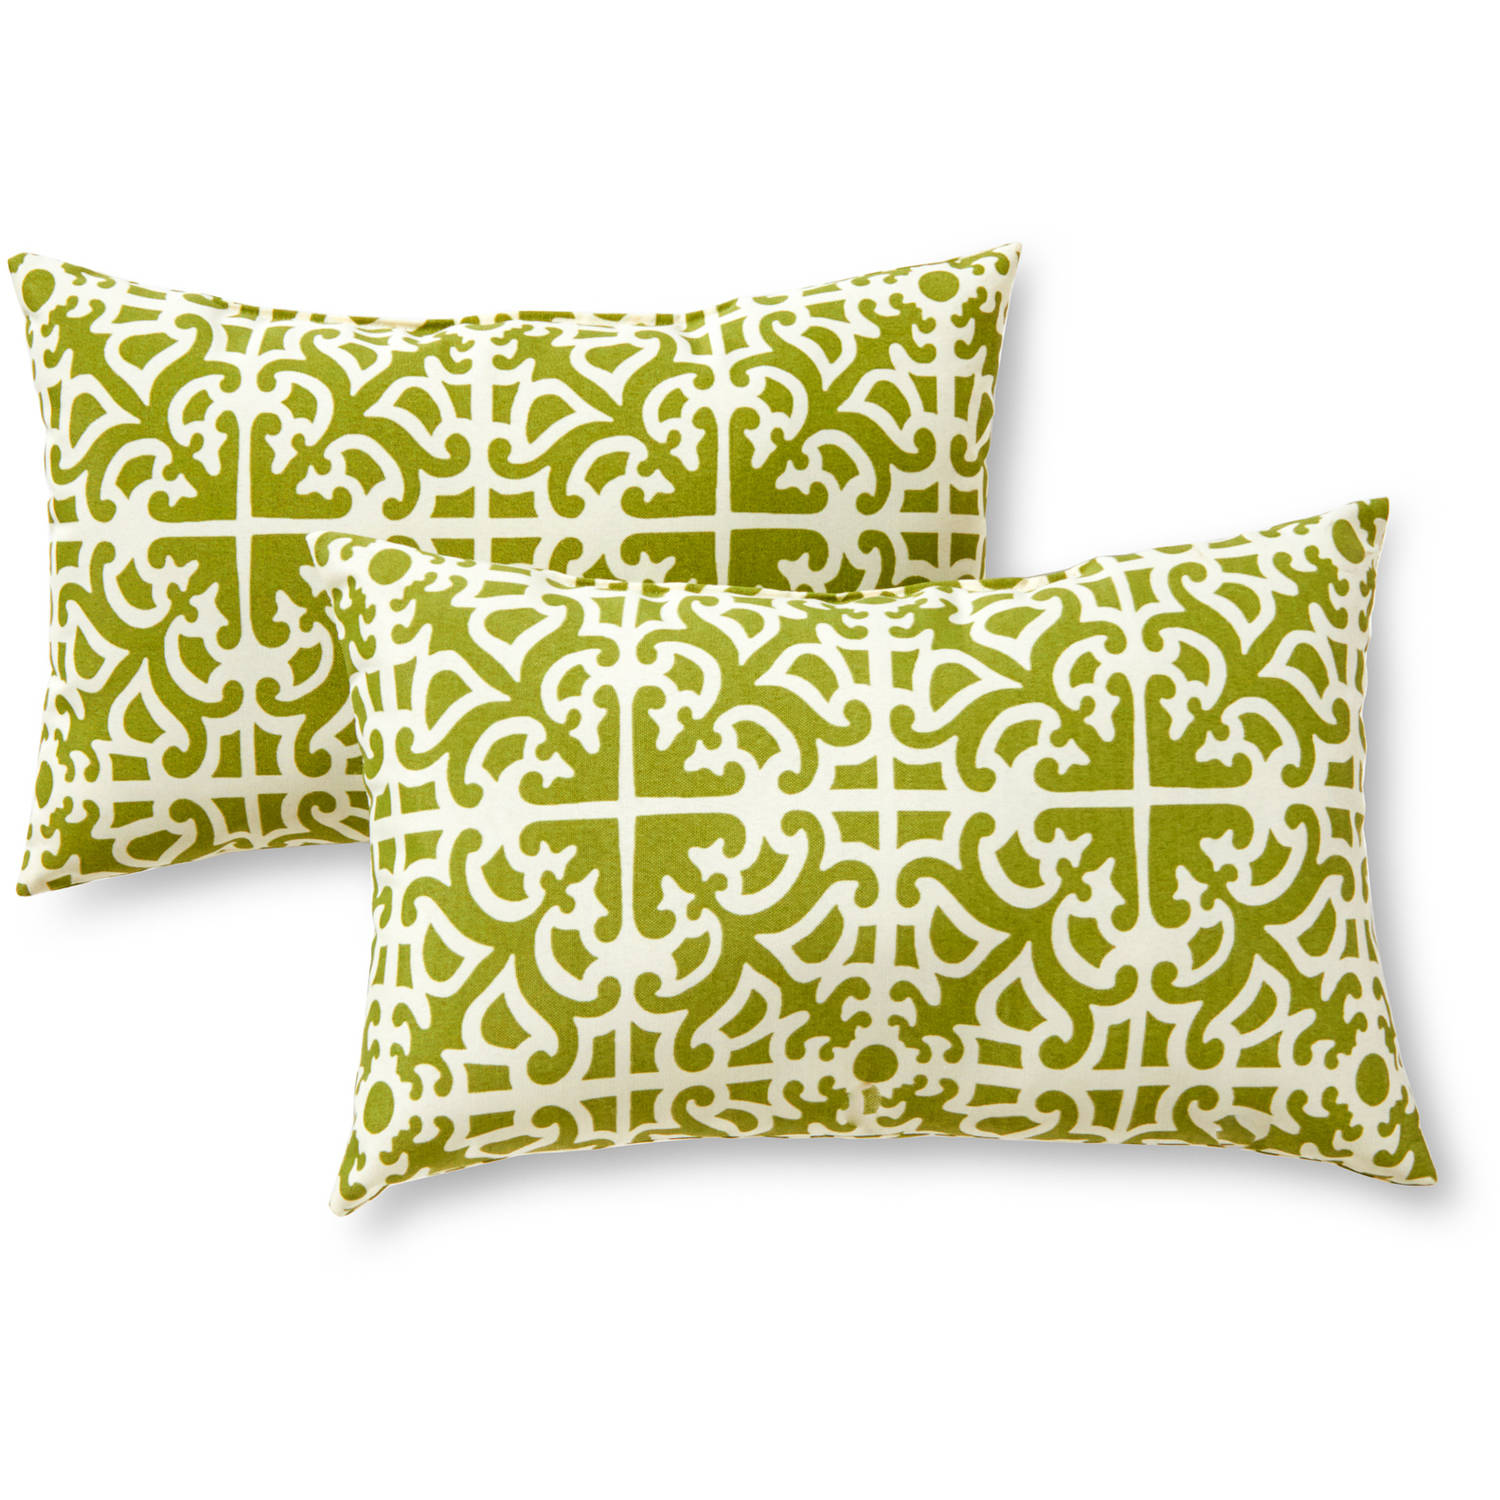 Greendale Home Fashions Rectangle Outdoor Accent Pillows, Set Of 2, Grass